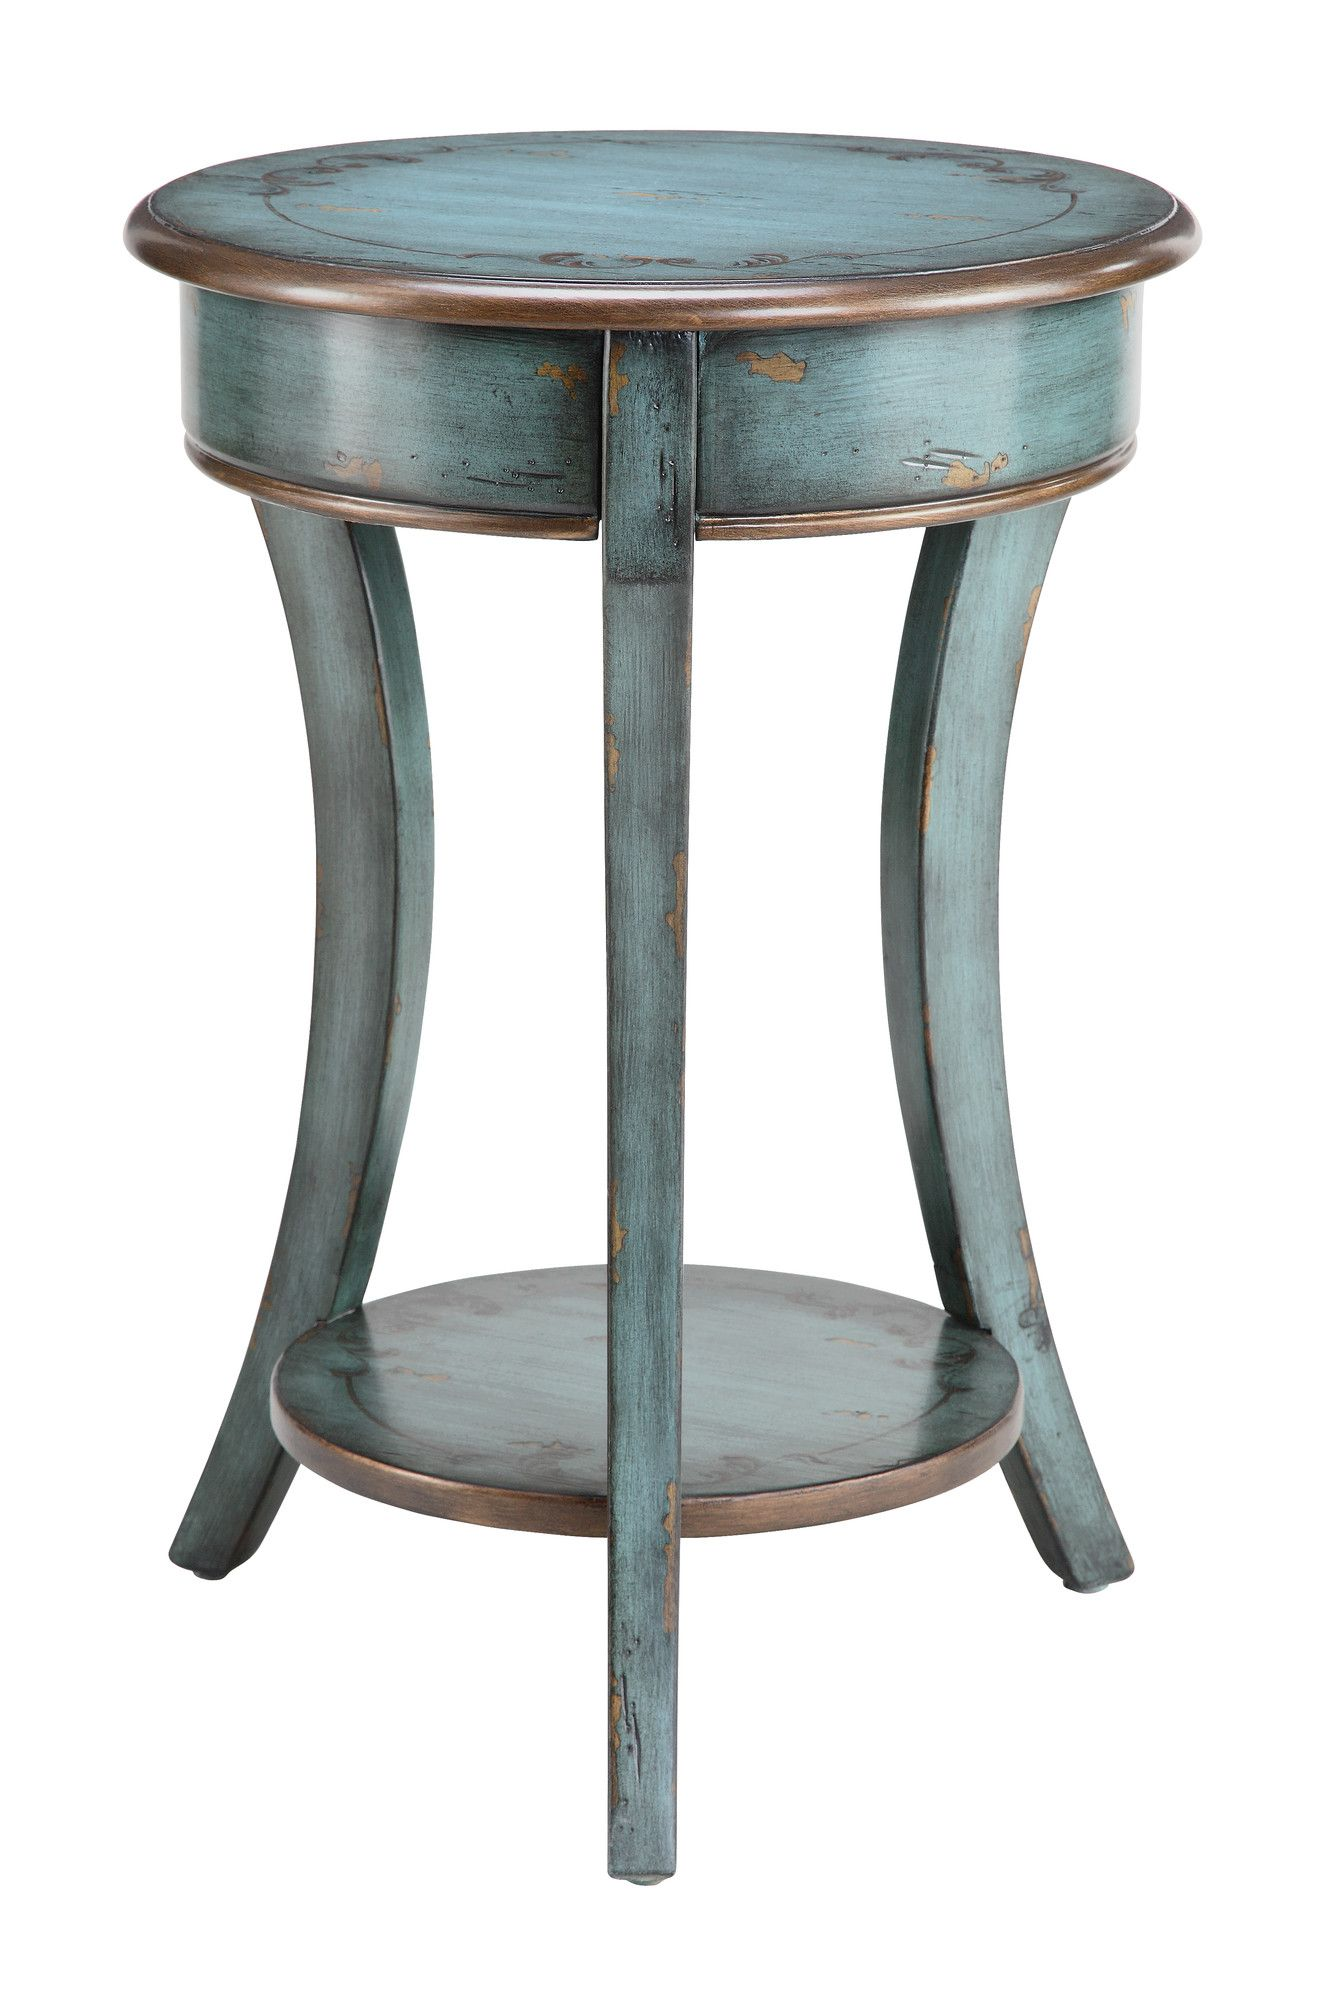 stein world painted treasures end table bronzed and distressed paint rustic wood accent job round tablecloth half moon tables furniture party cloth catalogue bar cabinet red metal